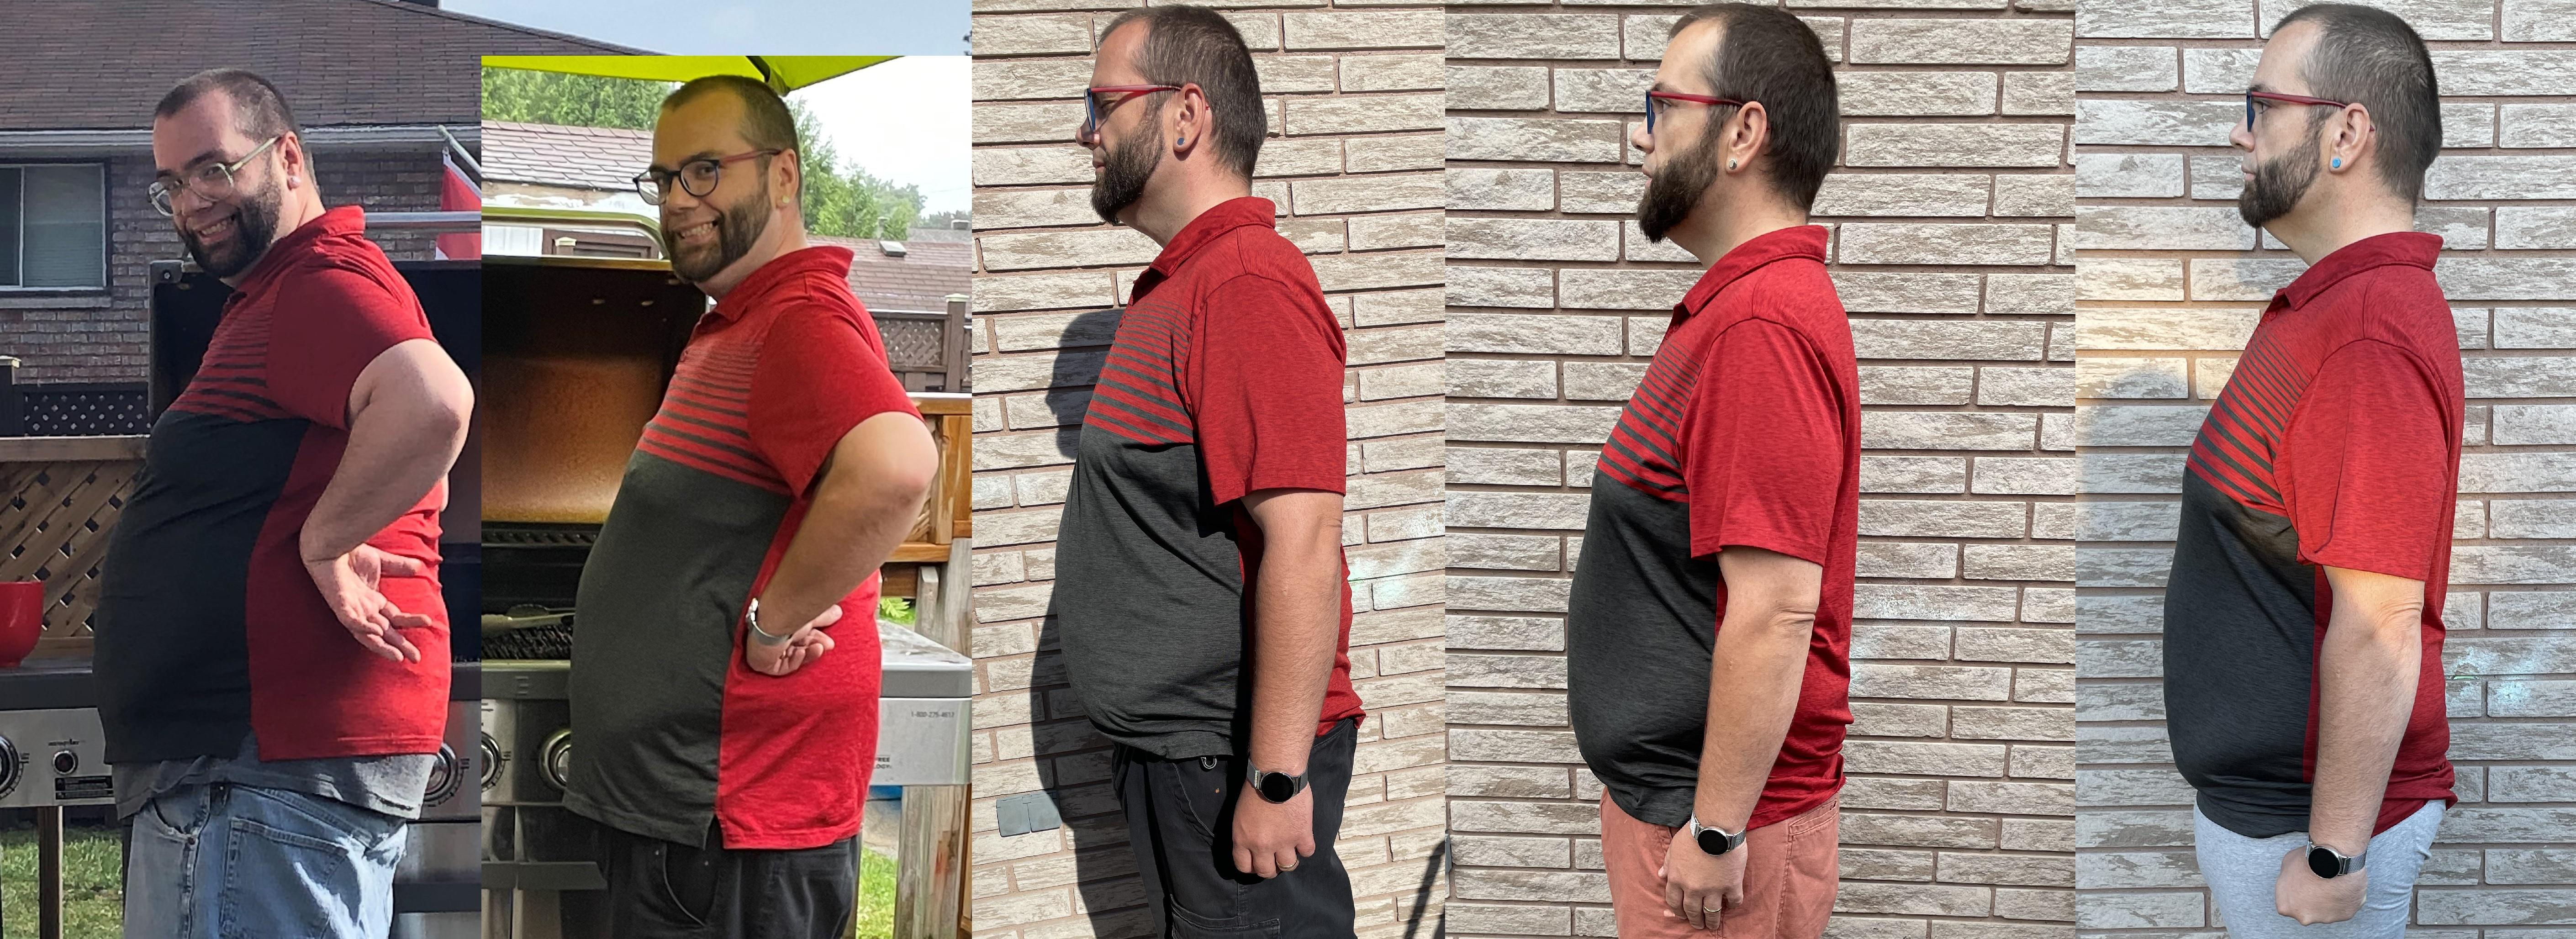 5 foot 10 Male 71 lbs Fat Loss Before and After 299 lbs to 228 lbs